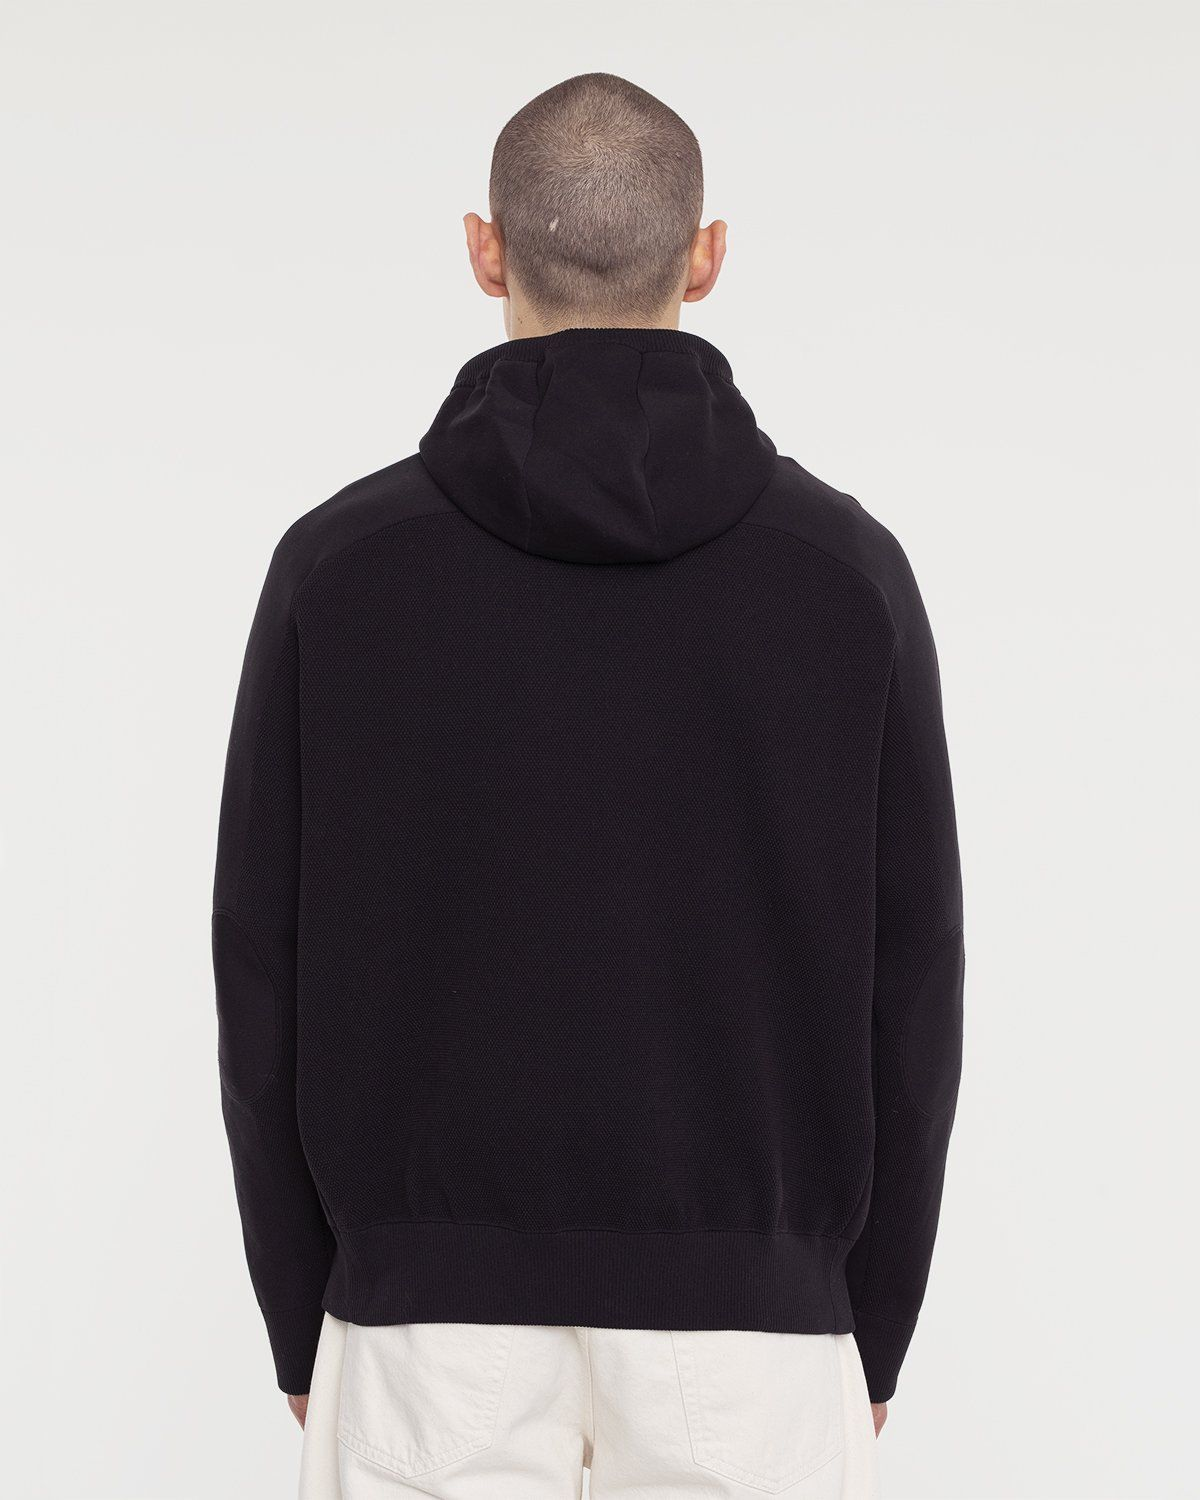 The North Face Black Series - Engineered Knit Hoodie Black - Image 5